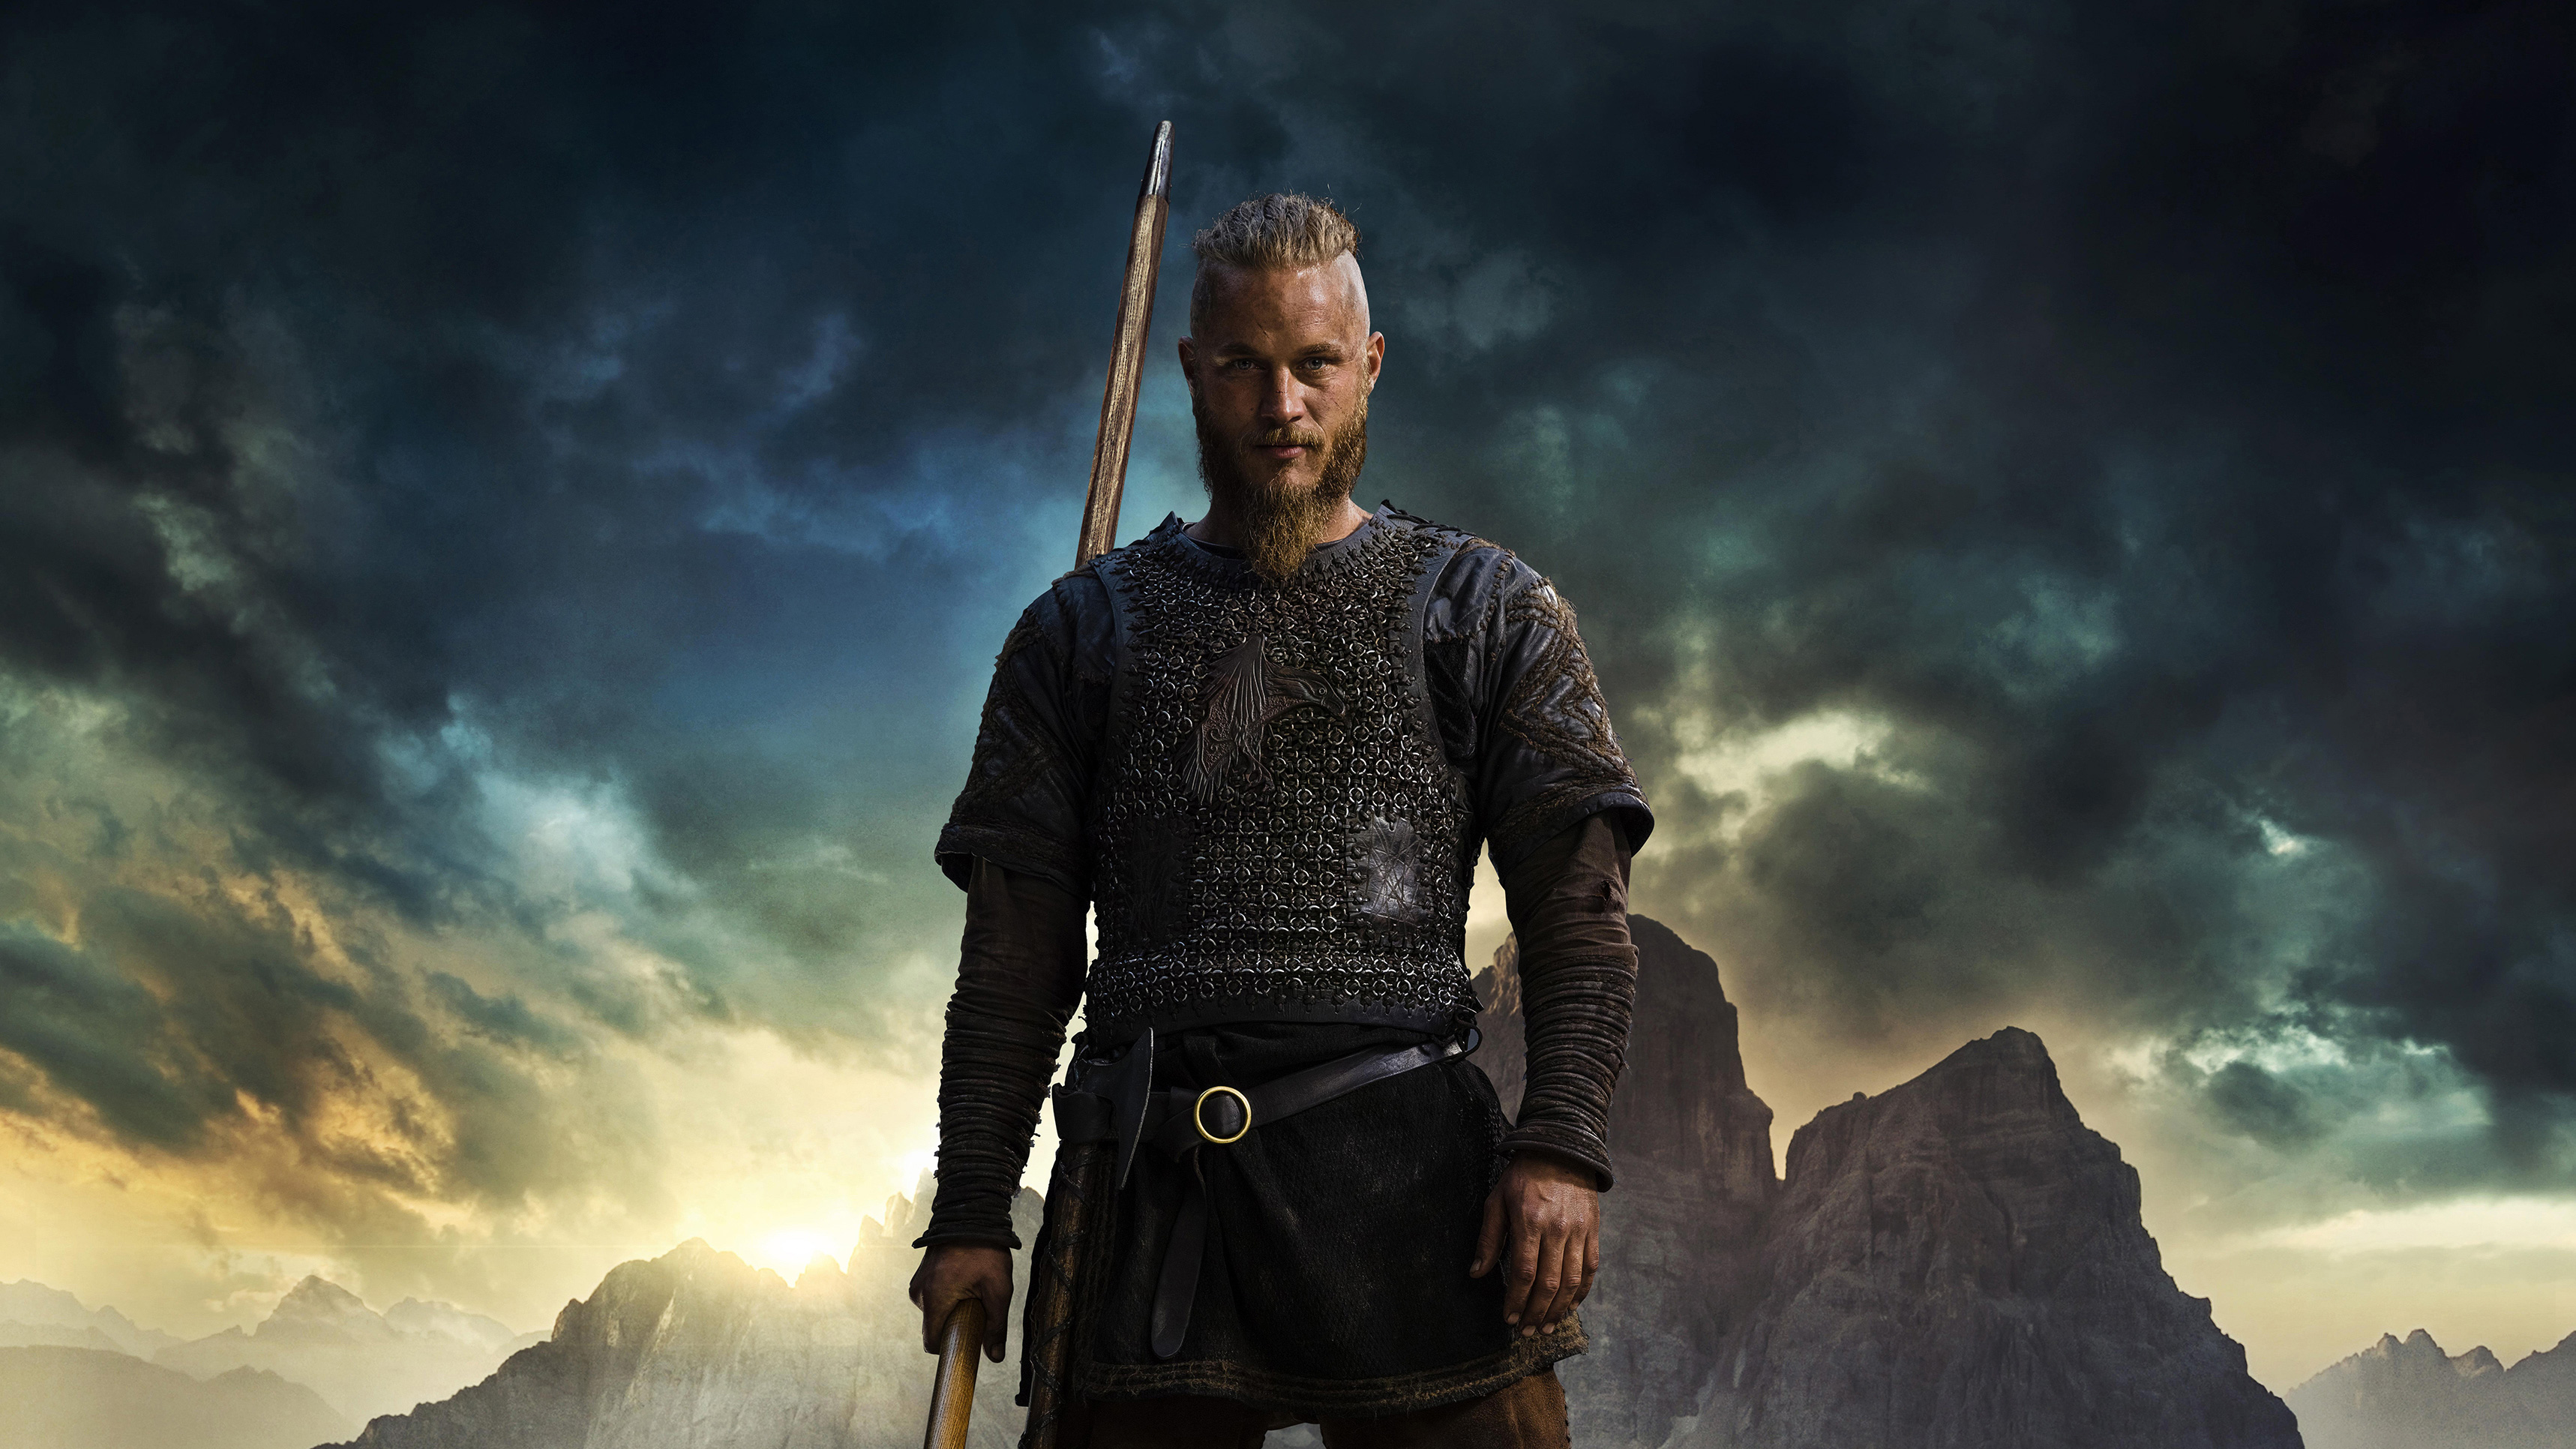 2560x1440 Vikings Ragnar 4k 1440p Resolution Hd 4k Wallpapers Images Backgrounds Photos And Pictures